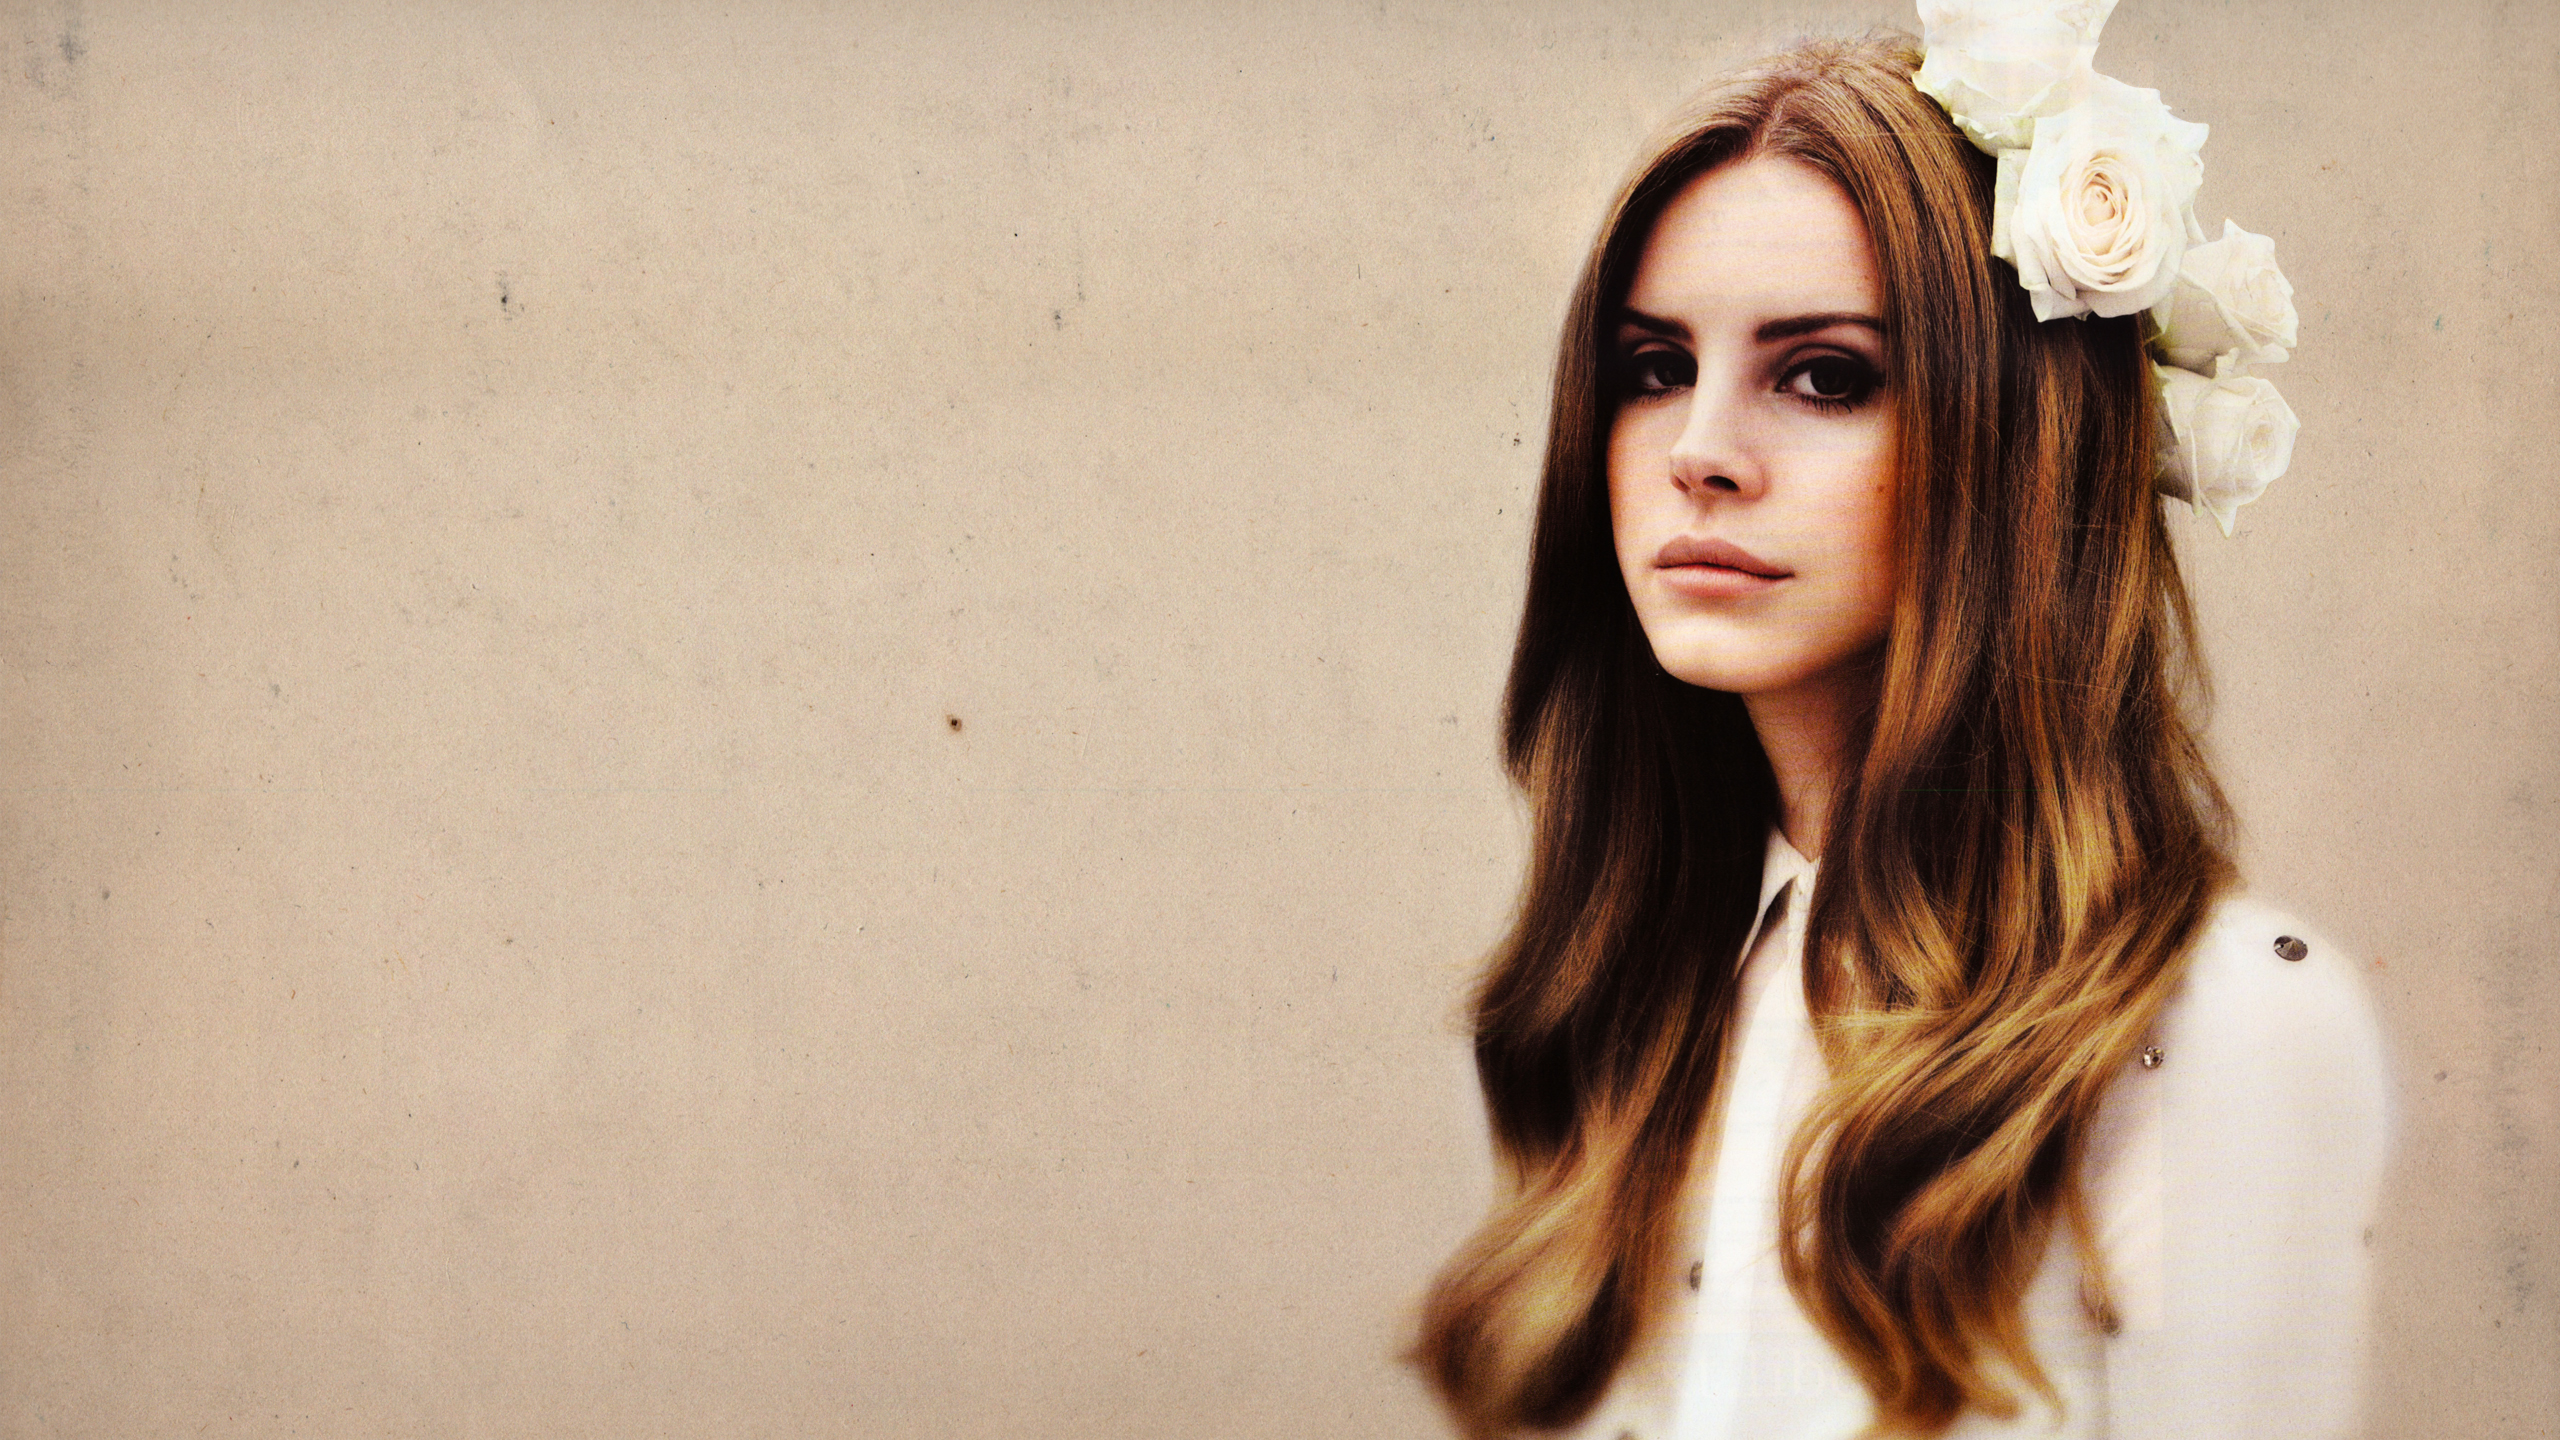 Lana Del Rey Wallpaper 2560x1440 77131